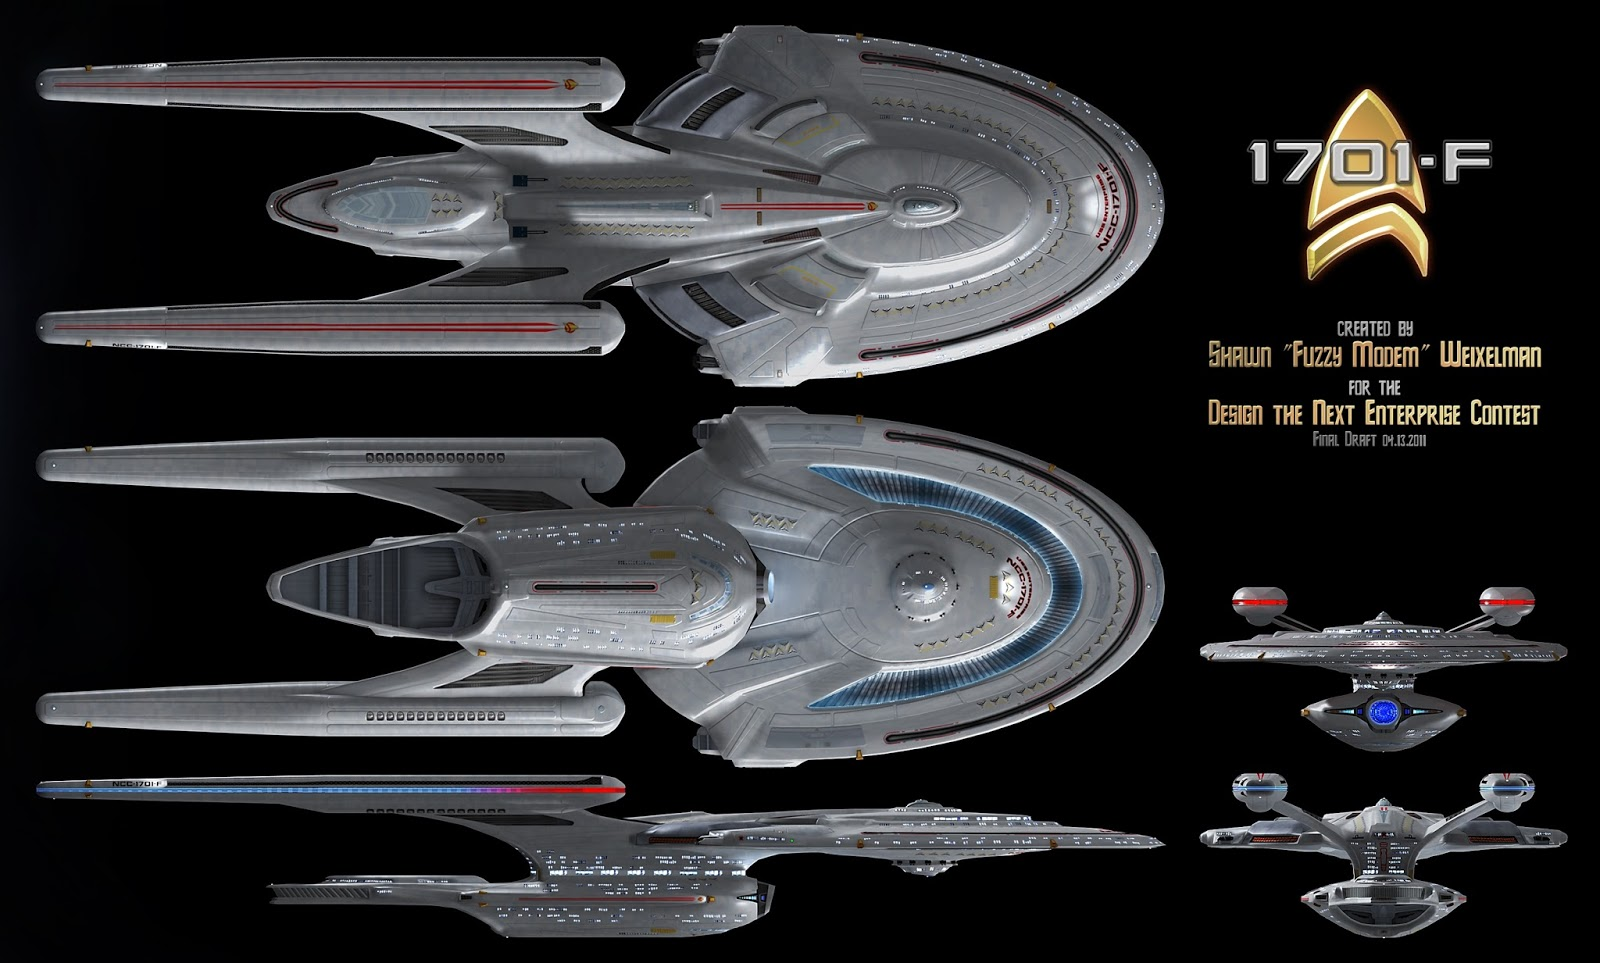 The Trek Collective: Complete 2016 Ships of the Line line-up revealed